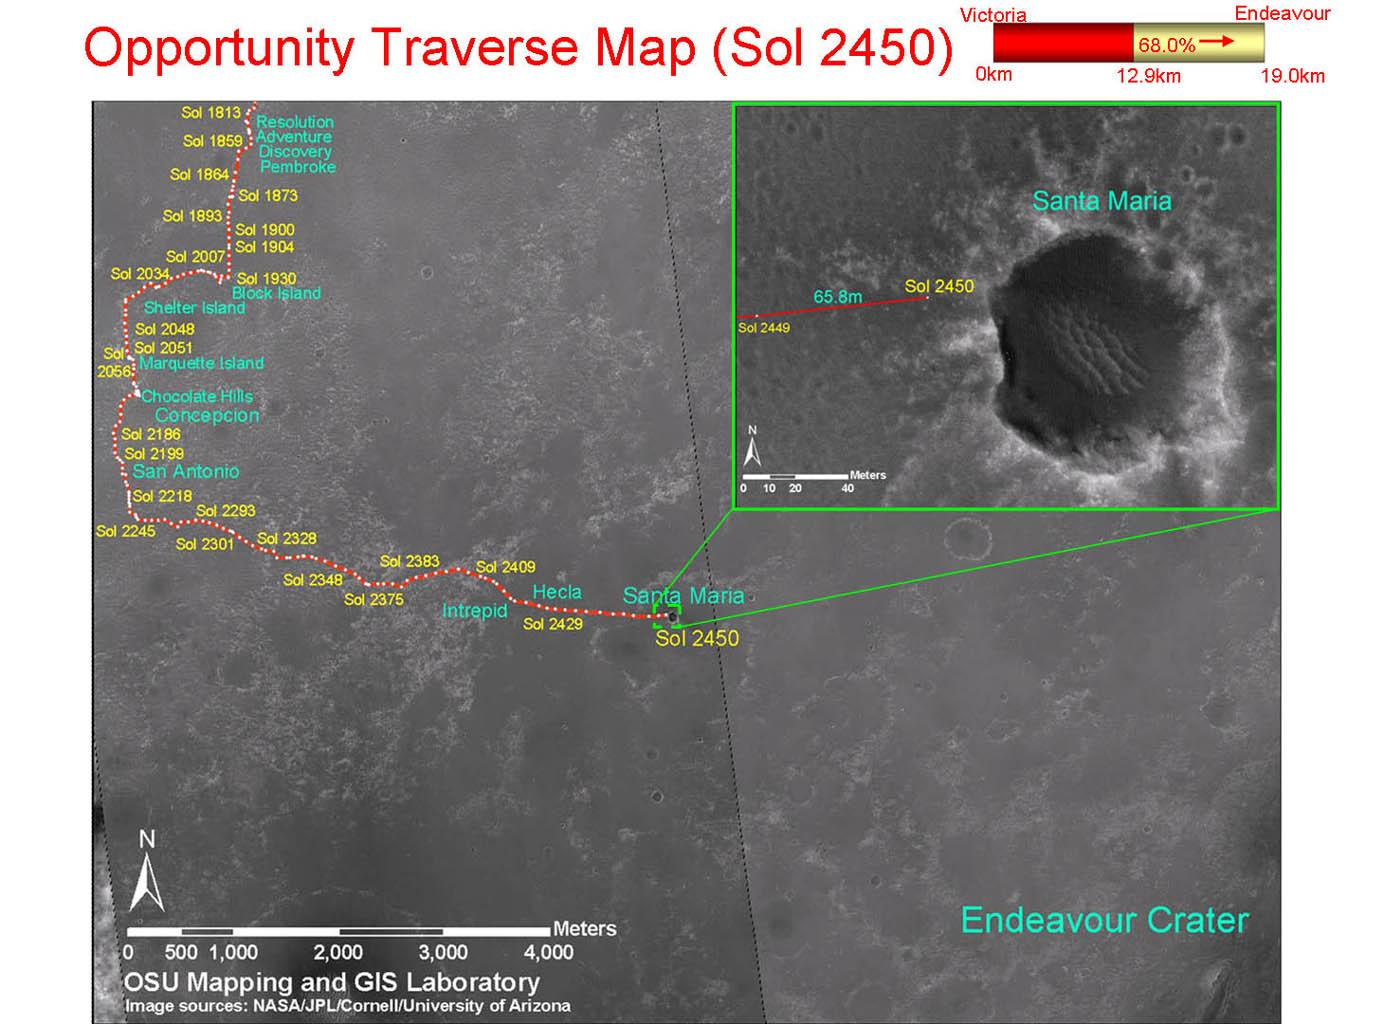 This map shows the path that NASA's Mars Exploration Rover Opportunity followed from the 1,813th Martian day, or sol, to Sol 2450 (Dec. 15, 2010) when Opportunity approached a crater informally named 'Santa Maria.'